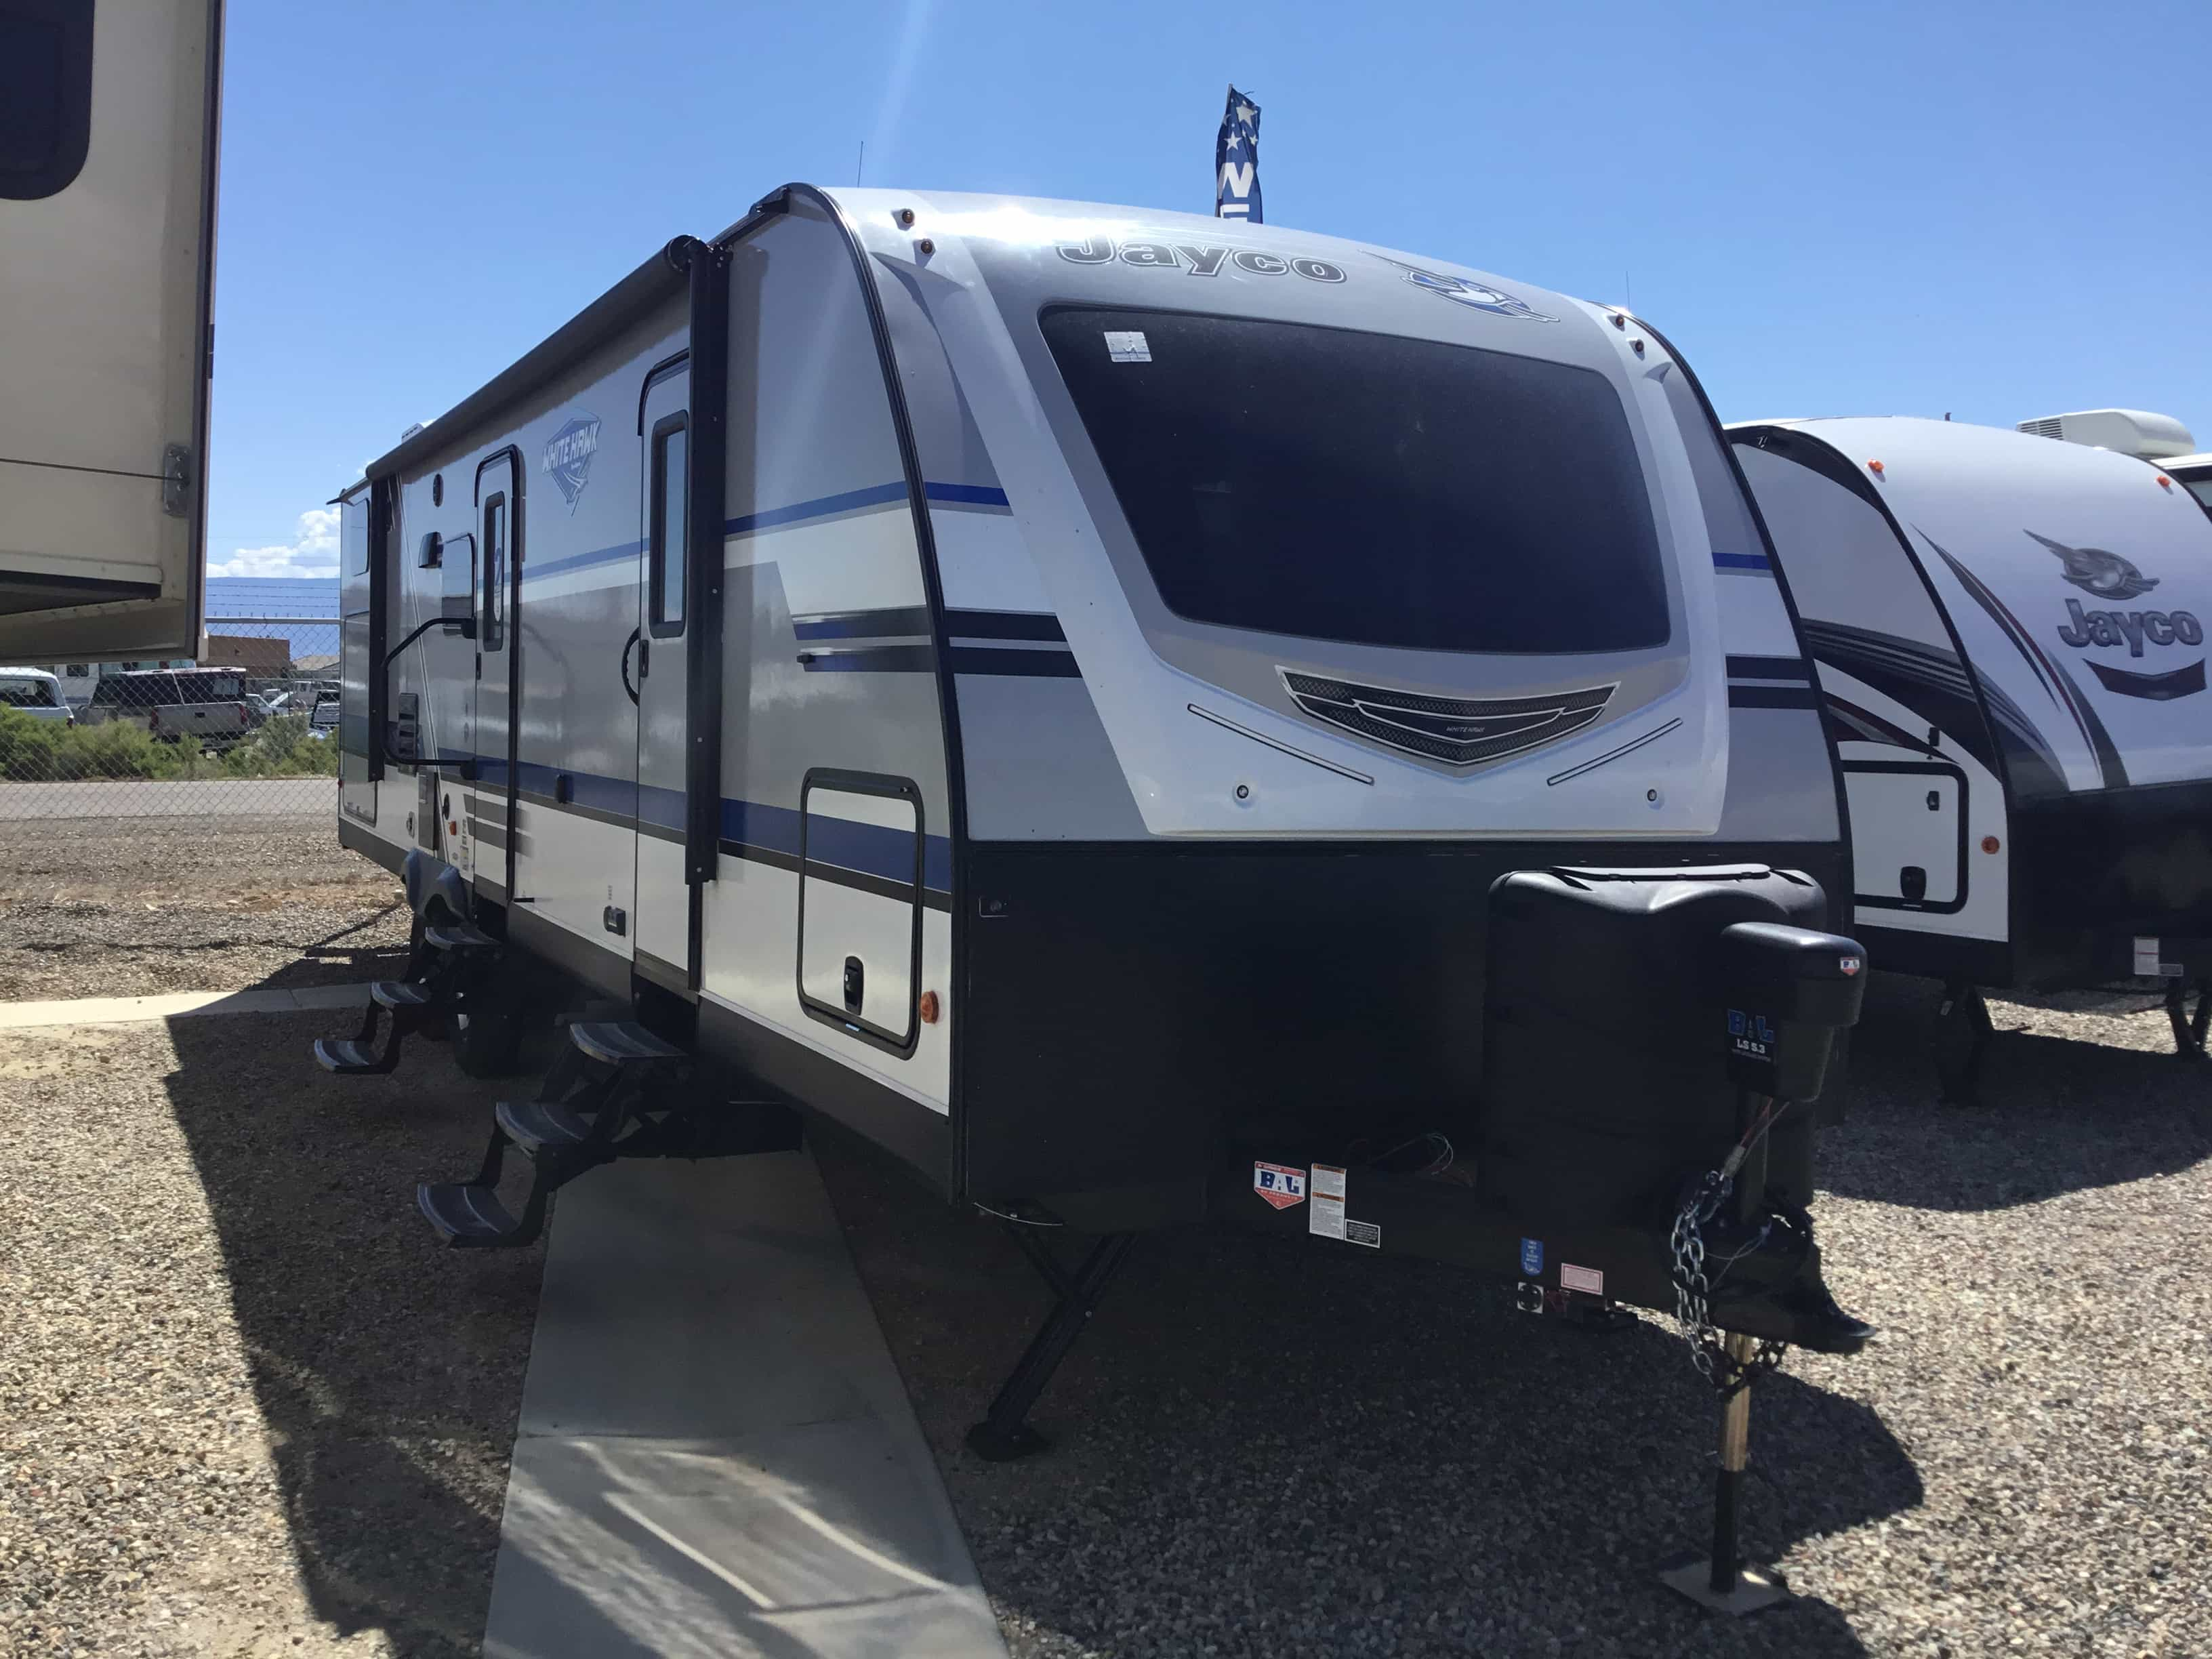 2018 JAYCO JAYCO 31BH WHITE HAWK J14Z0085 also 2007 East Aluminum Frameless Dump Trailer together with 2017 Mac Mvp Smooth Side Dump Trailer 33x96 likewise 361518120502 likewise What Is The Difference Between Full Overlay And Half Overlay Hinges. on frameless dump trailer